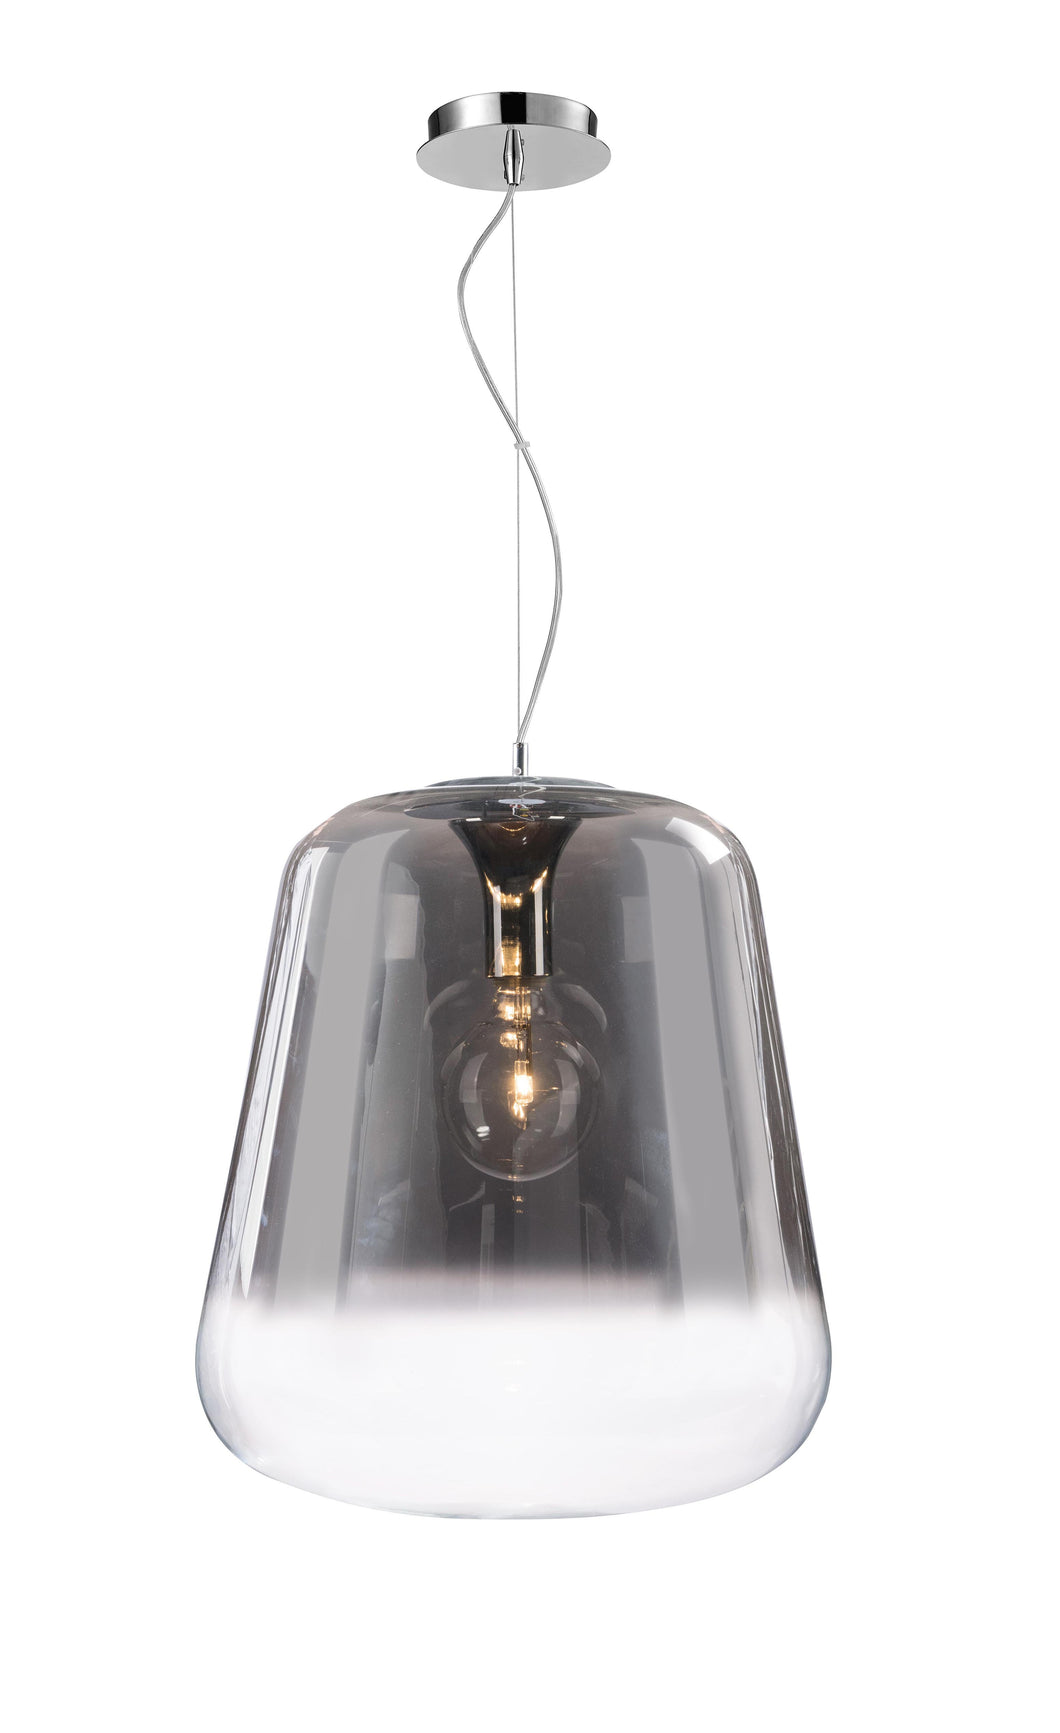 Verio Gradient Smoked Glass & Chrome Large Pendant 45cm - ID 6997